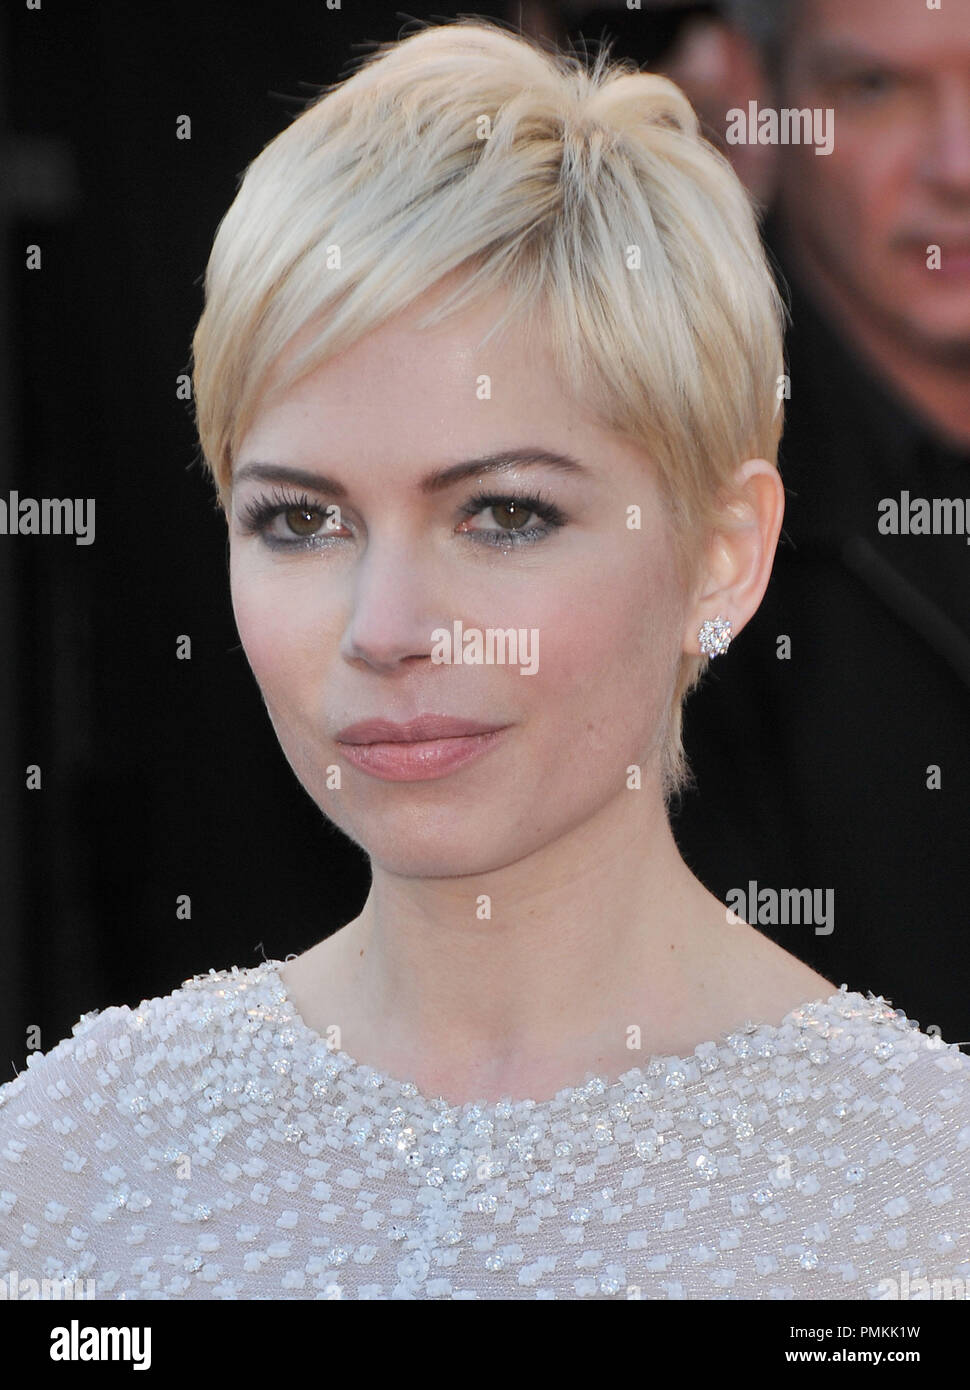 Michelle Williams at The 83rd Annual Academy Awards - Arrivals held at the Kodak Theater in Hollywood, CA. The event took place on Sunday, February 27, 2011. Photo by PRPP_Pacific Rim Photo Press / PictureLux  File Reference # 30871_563  For Editorial Use Only -  All Rights Reserved - Stock Image